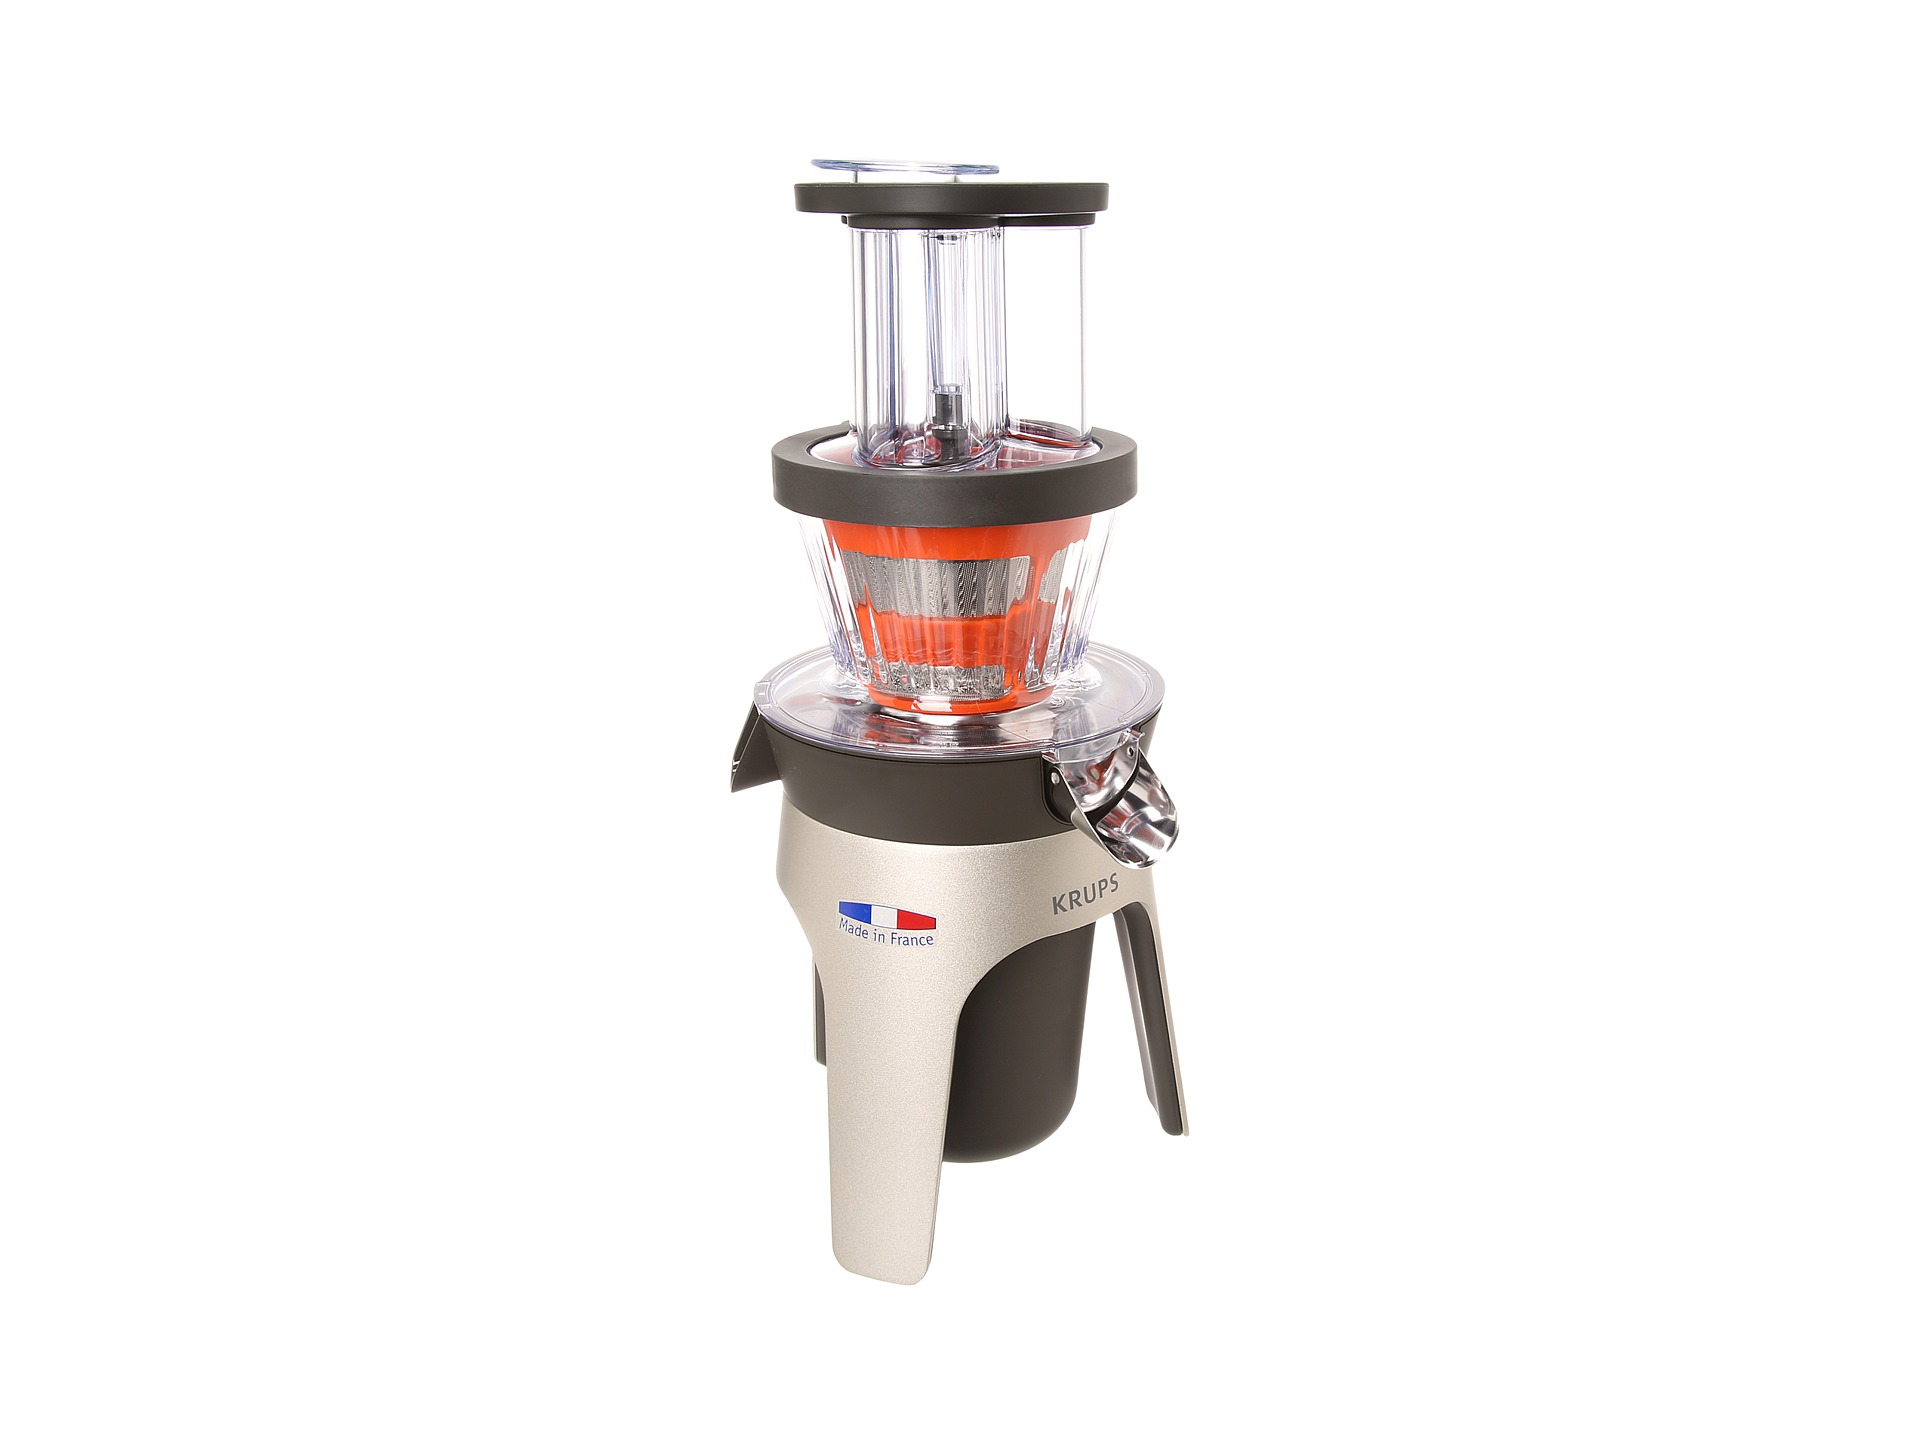 Krups Zb500e Infinity Slow Juice Extractor : No results for krups zb500 infinity slow juicer - Search ...